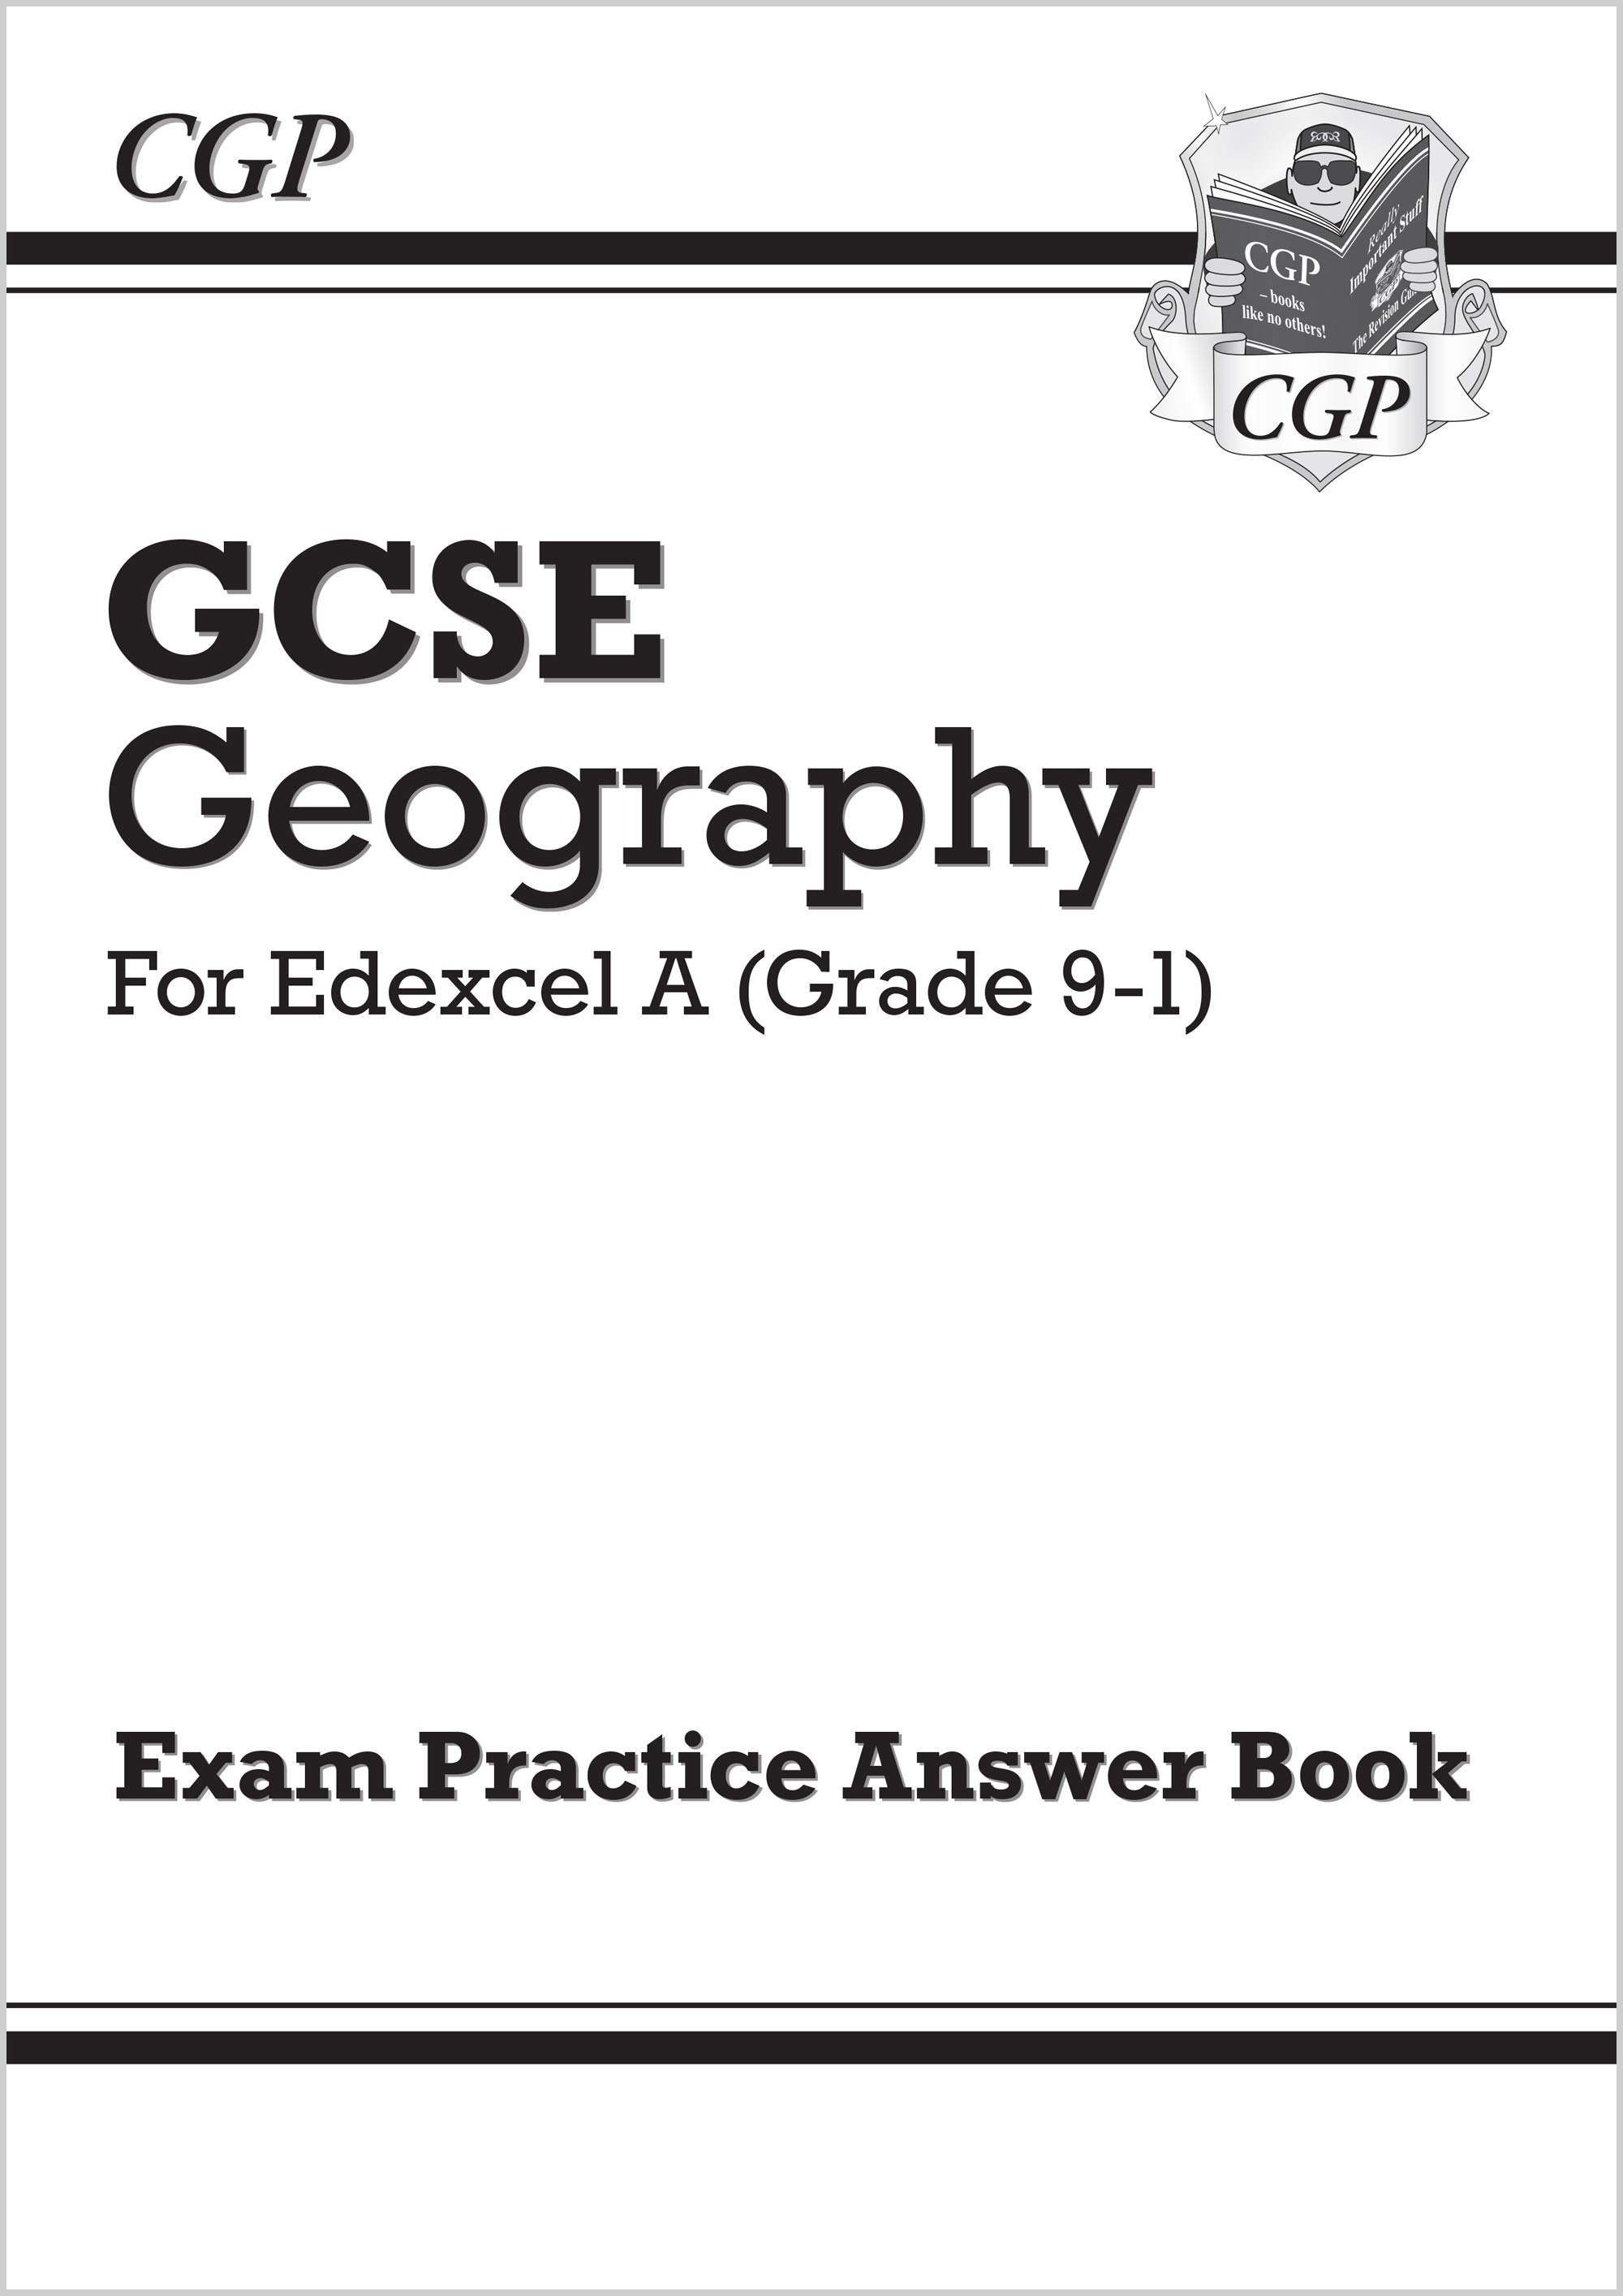 GEAQA41 - New Grade 9-1 GCSE Geography Edexcel A - Answers (for Exam Practice Workbook)